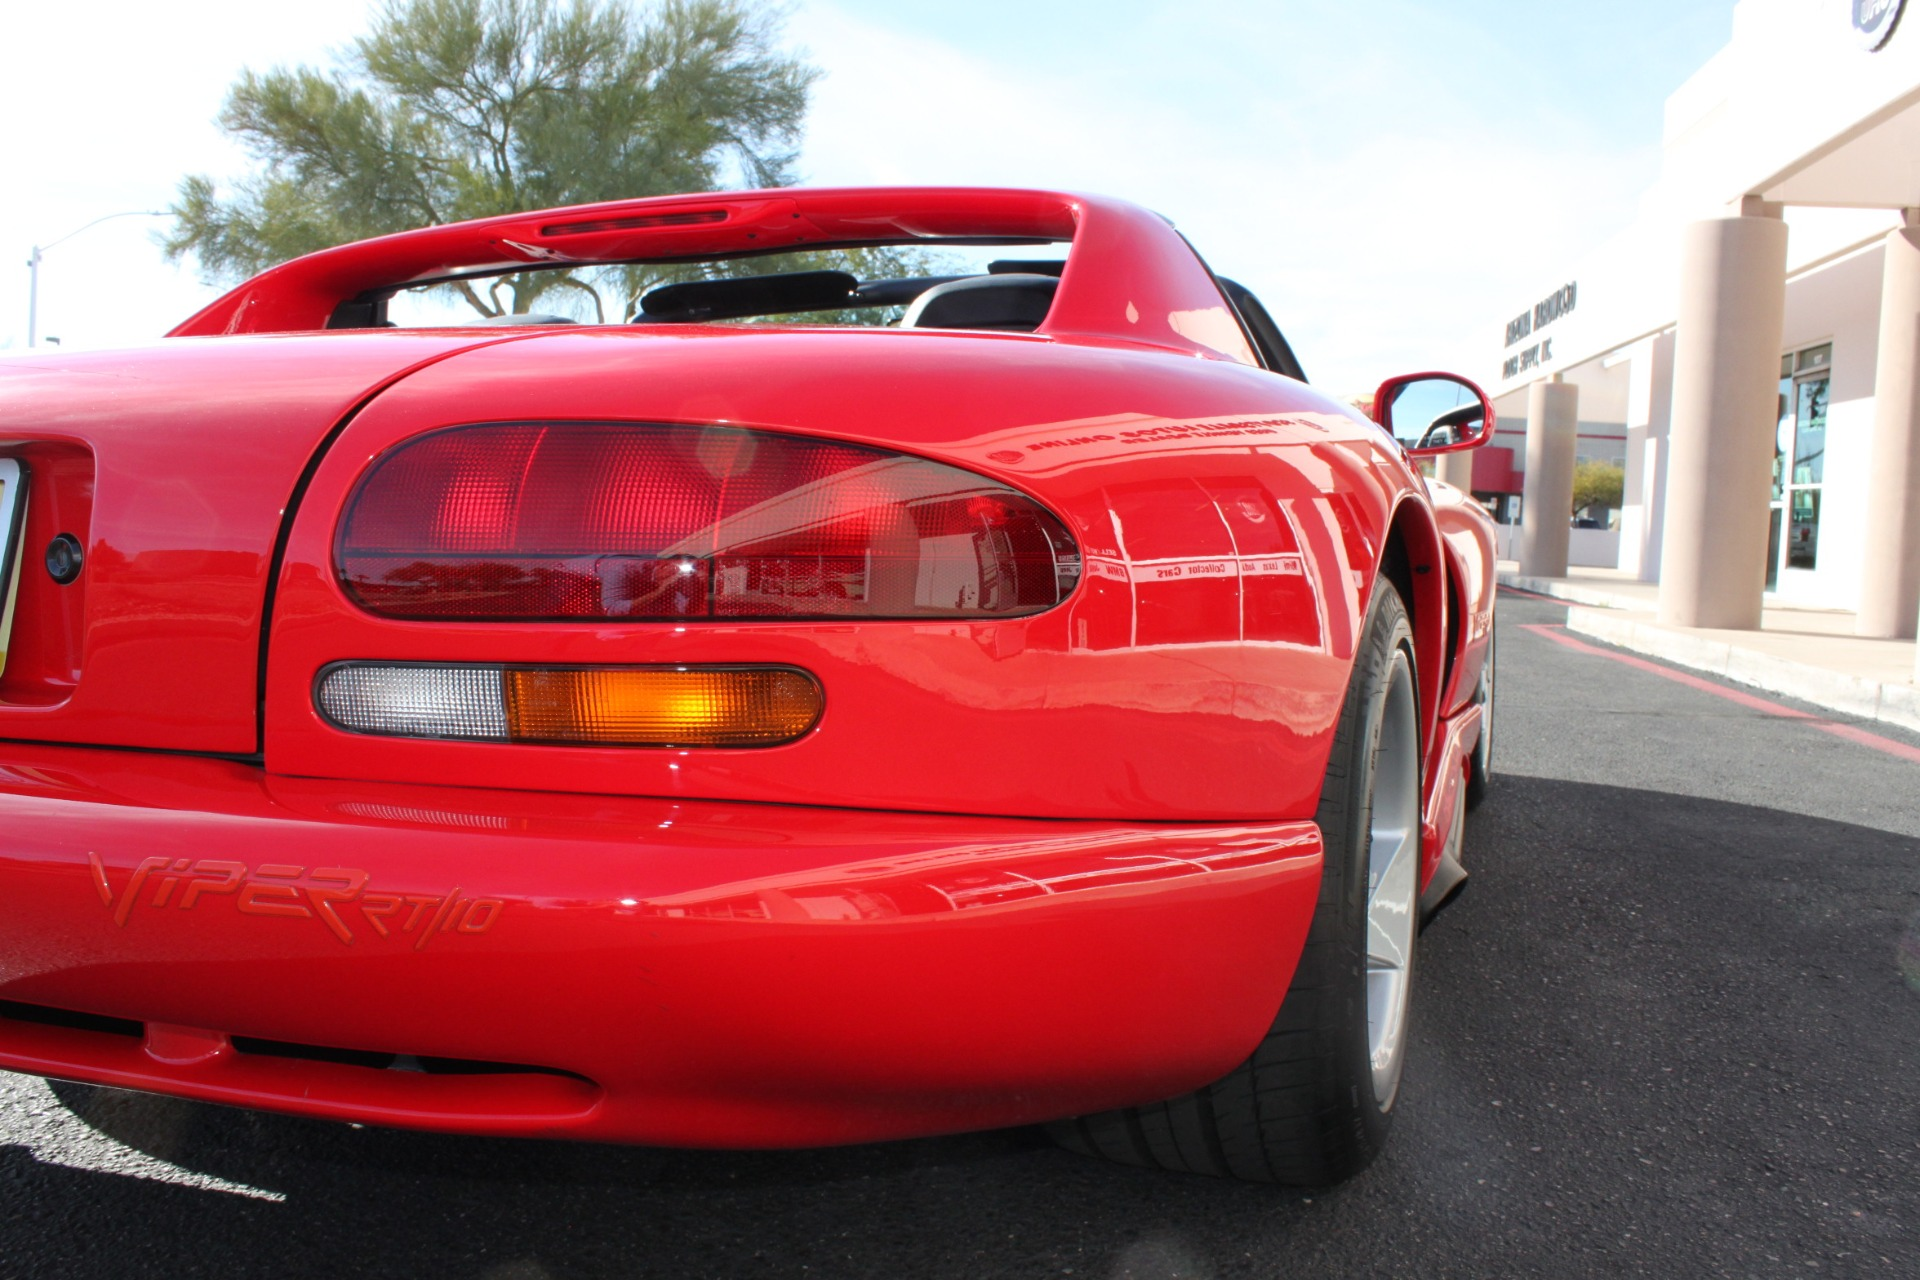 Used-1993-Dodge-Viper-Sports-Car-Chalenger